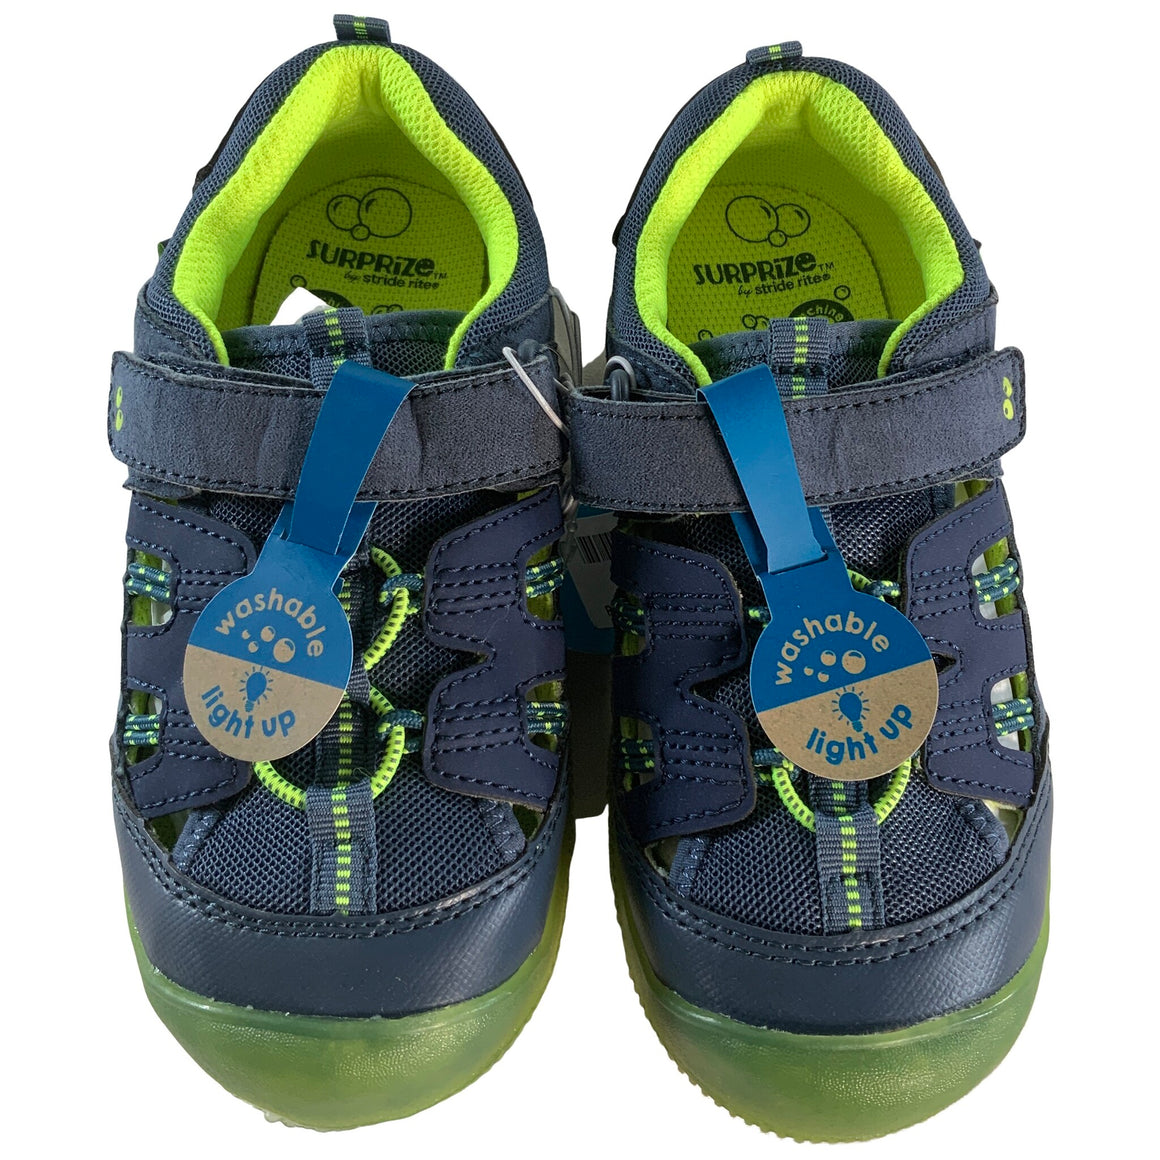 Toddler Boys' Josh Hiking Sandals - Blue 11 - Surprize By Stride Rite